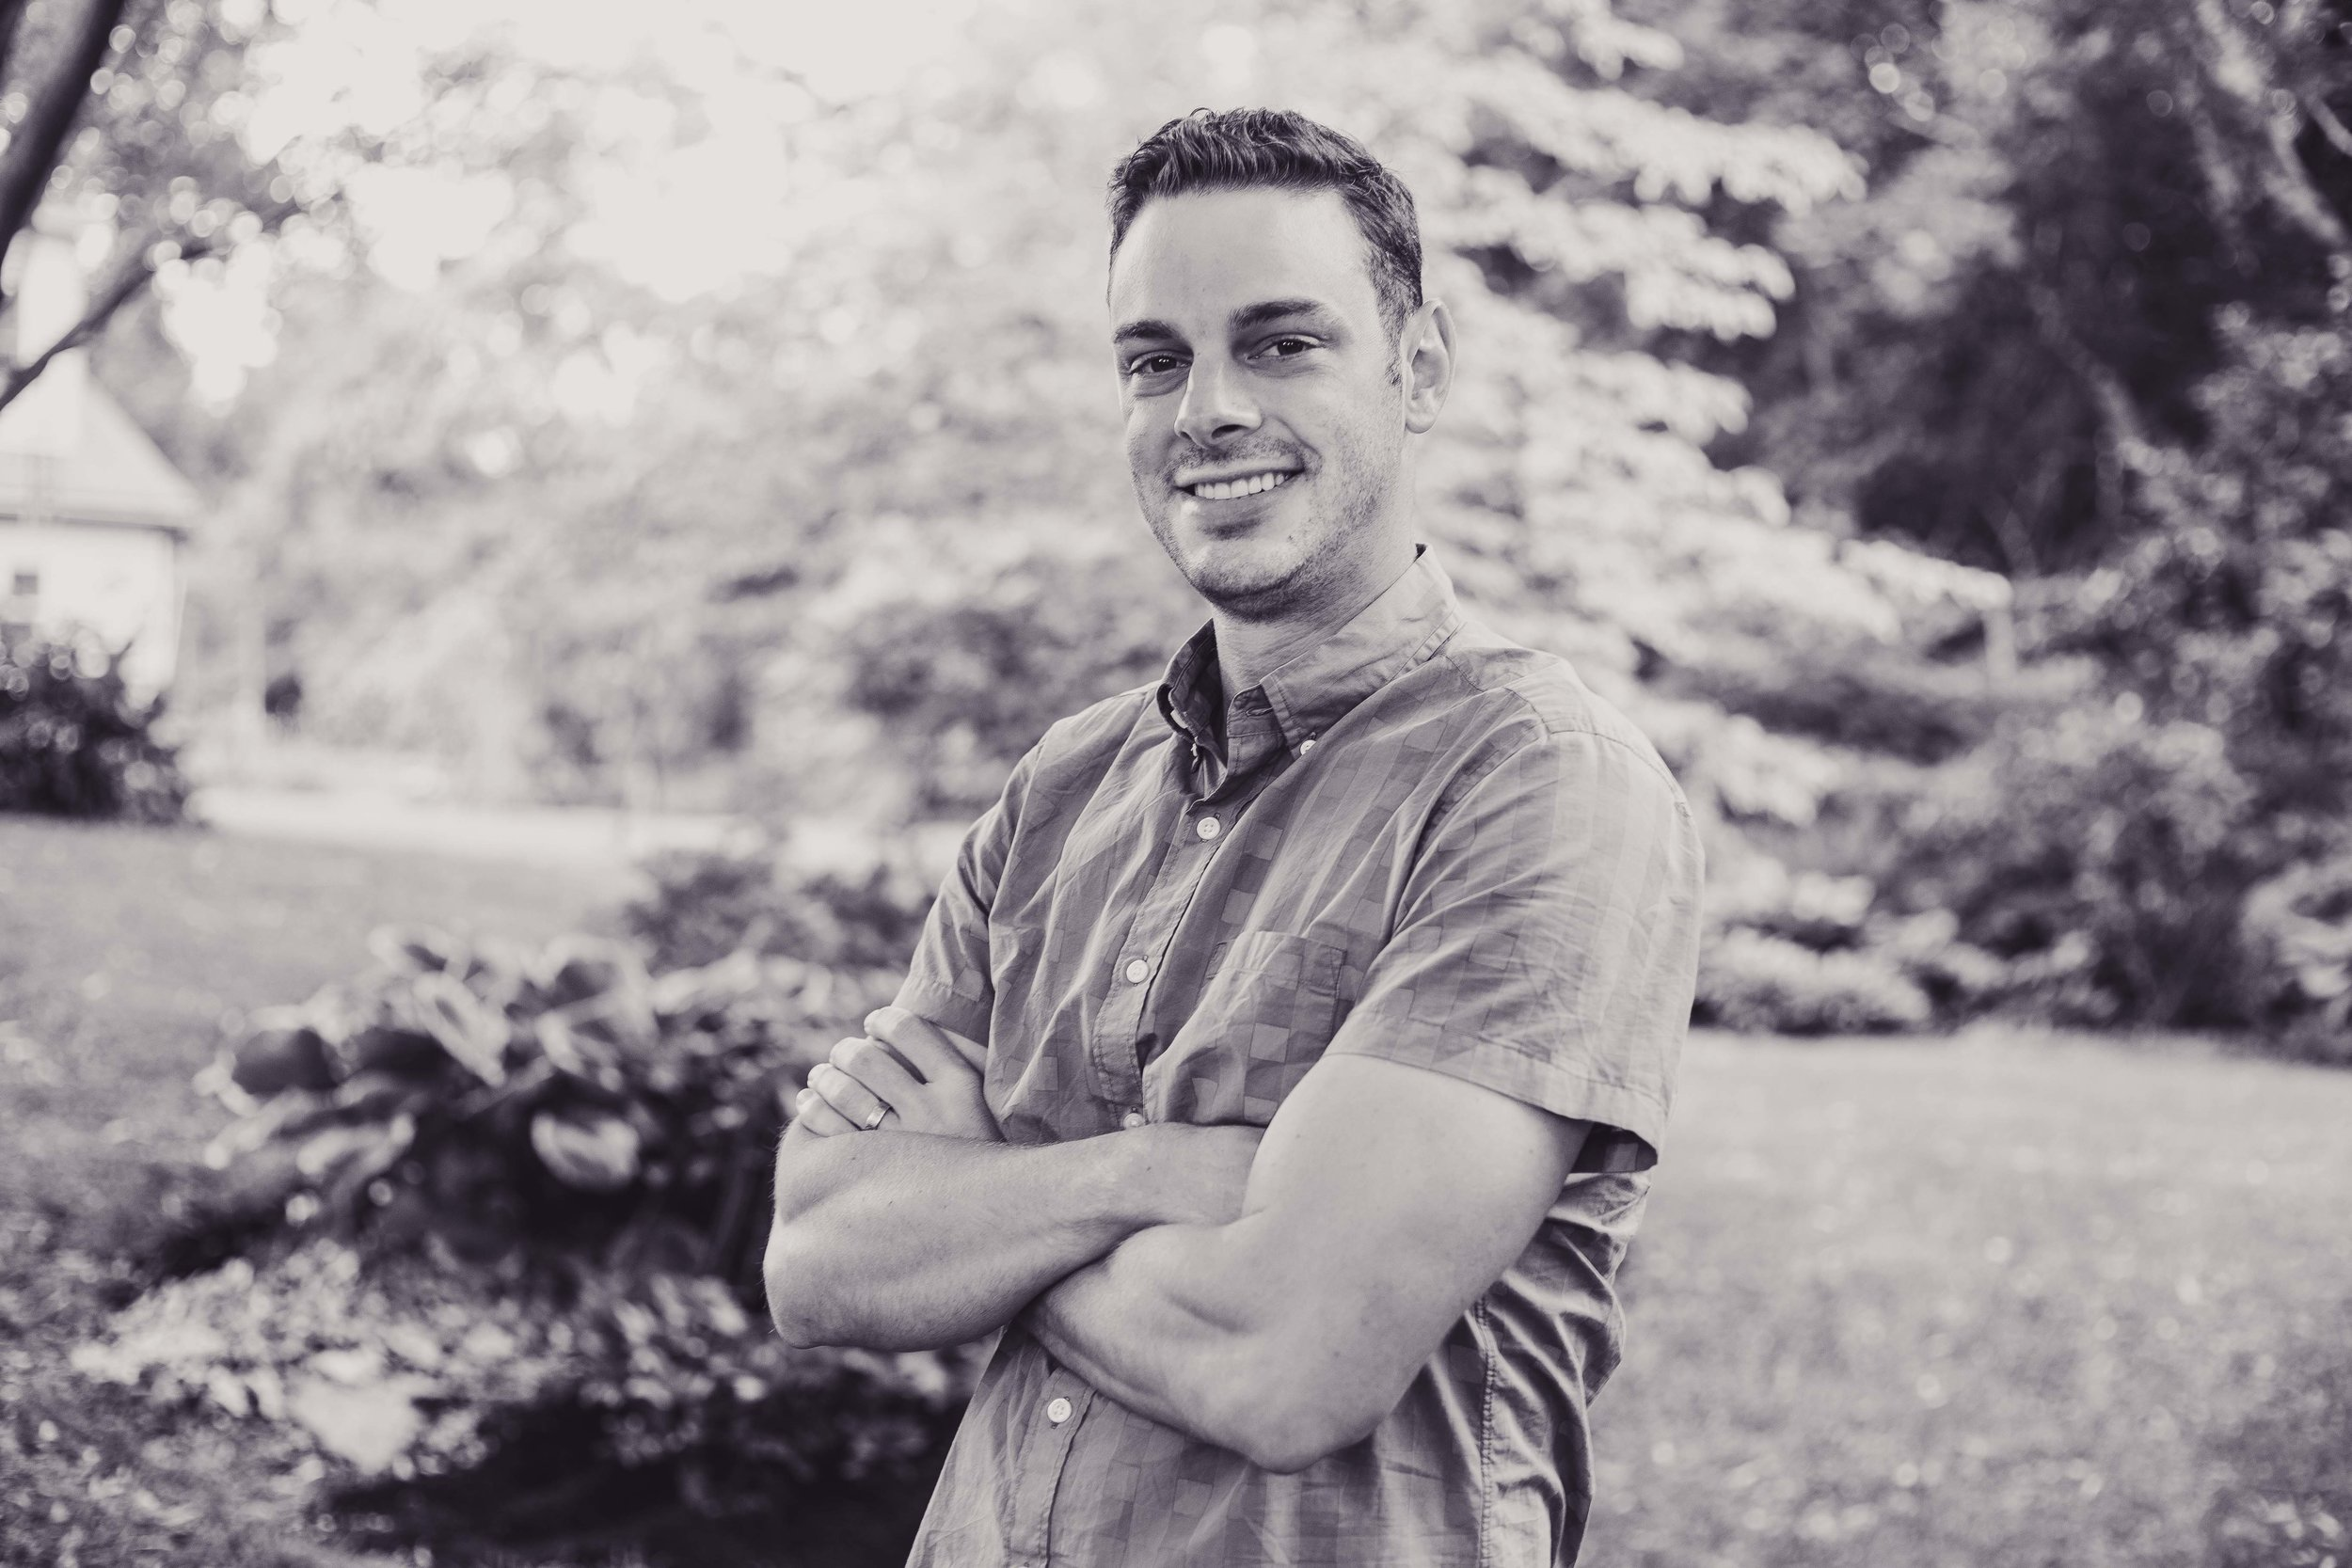 Ben Rodgers, Owner of Pivotol Branding and Marketing in Maine